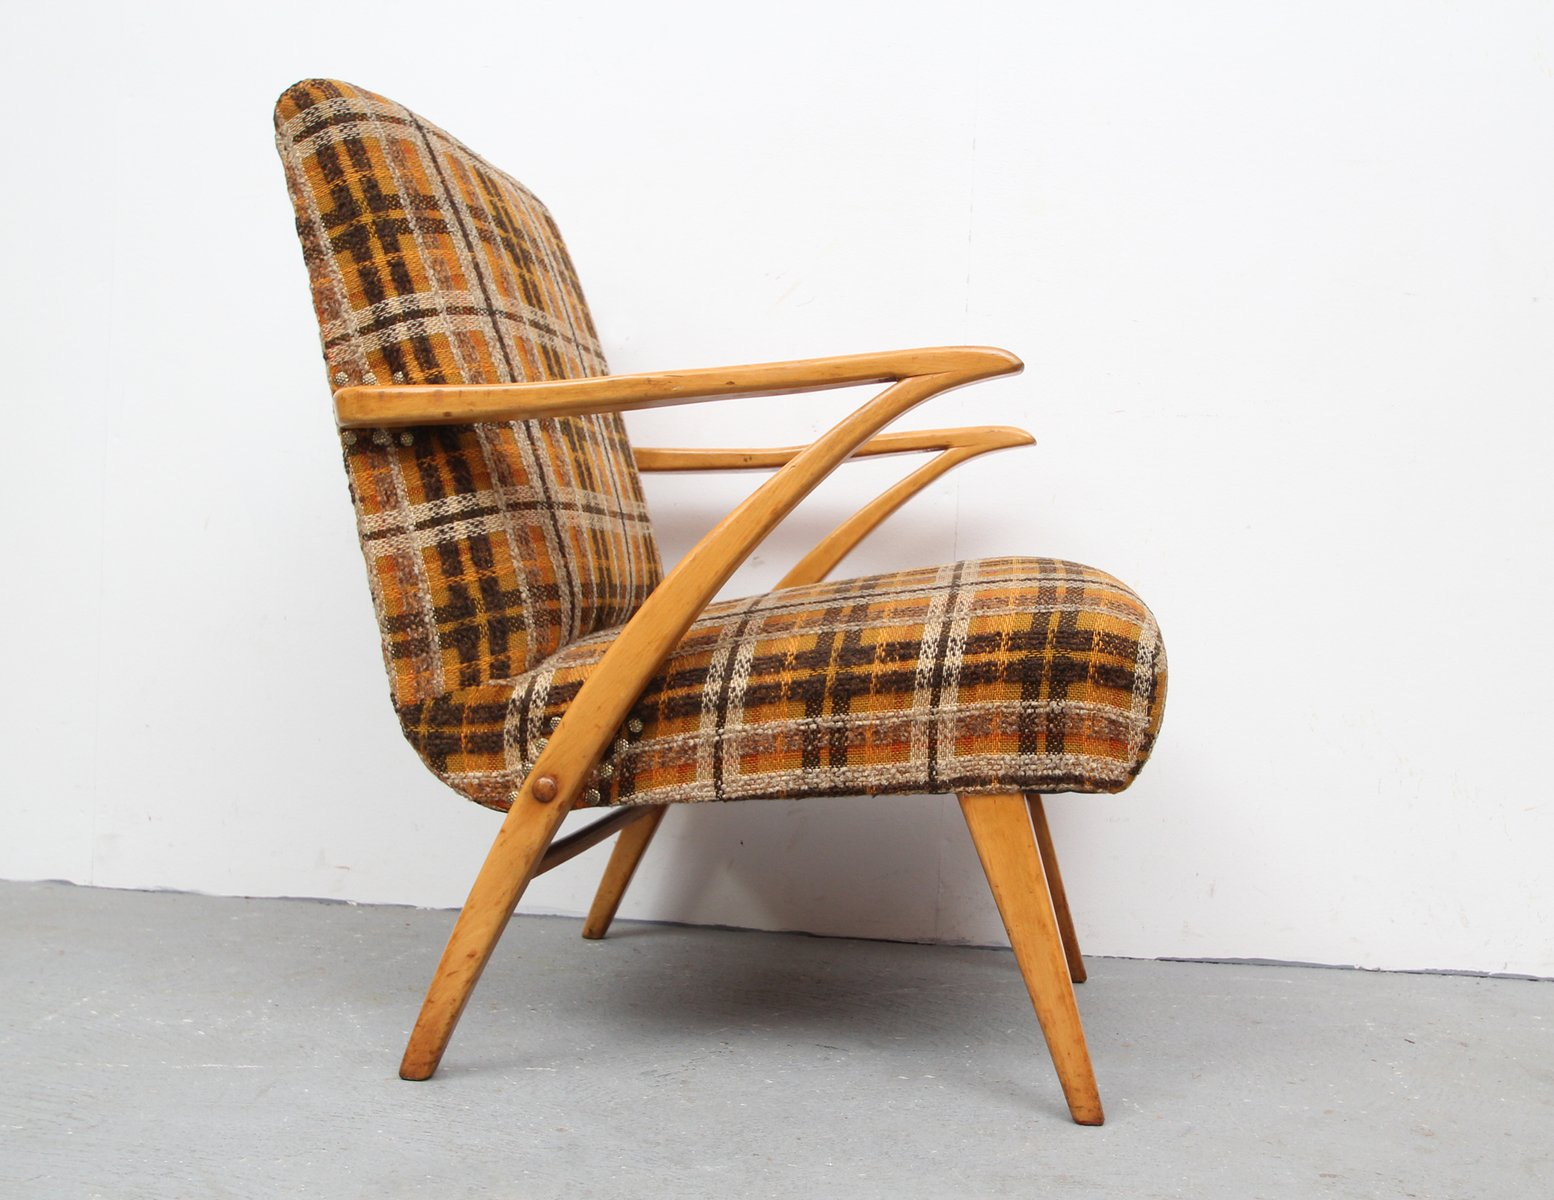 Wooden arm chair - Wooden Armchair With Checkered Fabric 1950s